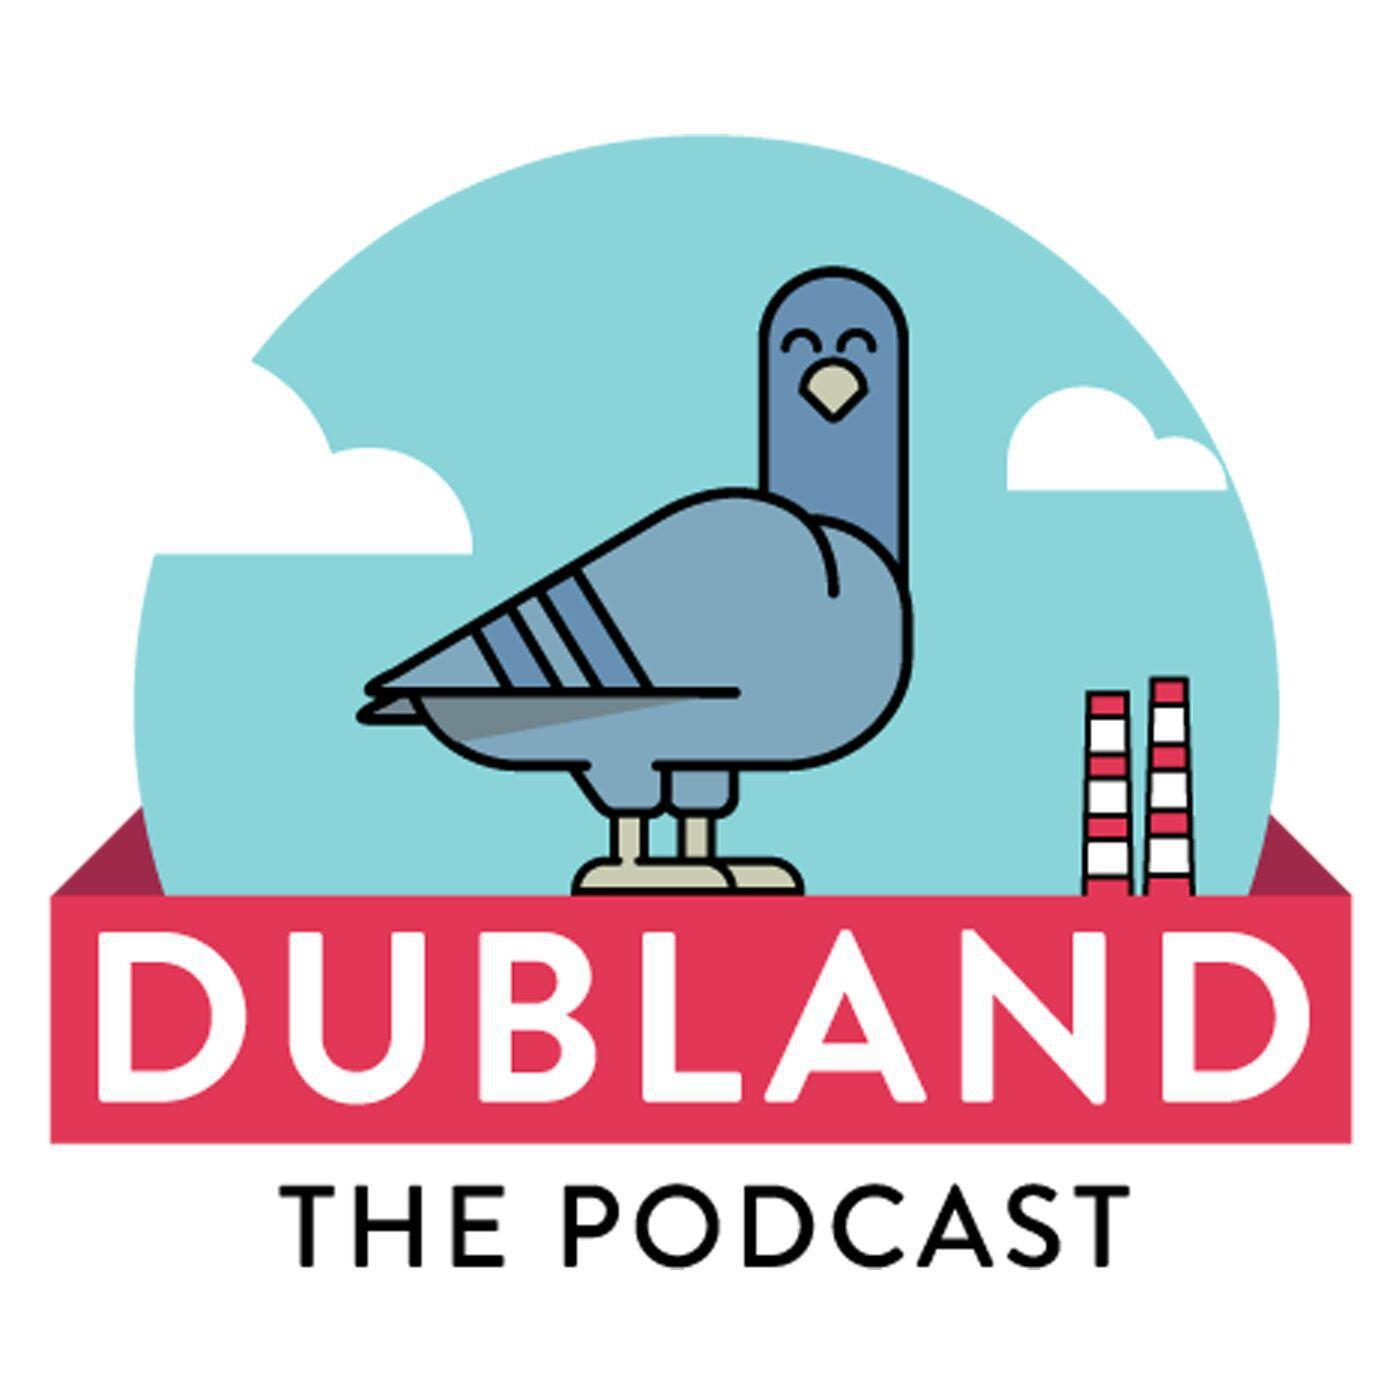 73 DUBLAND The Podcast